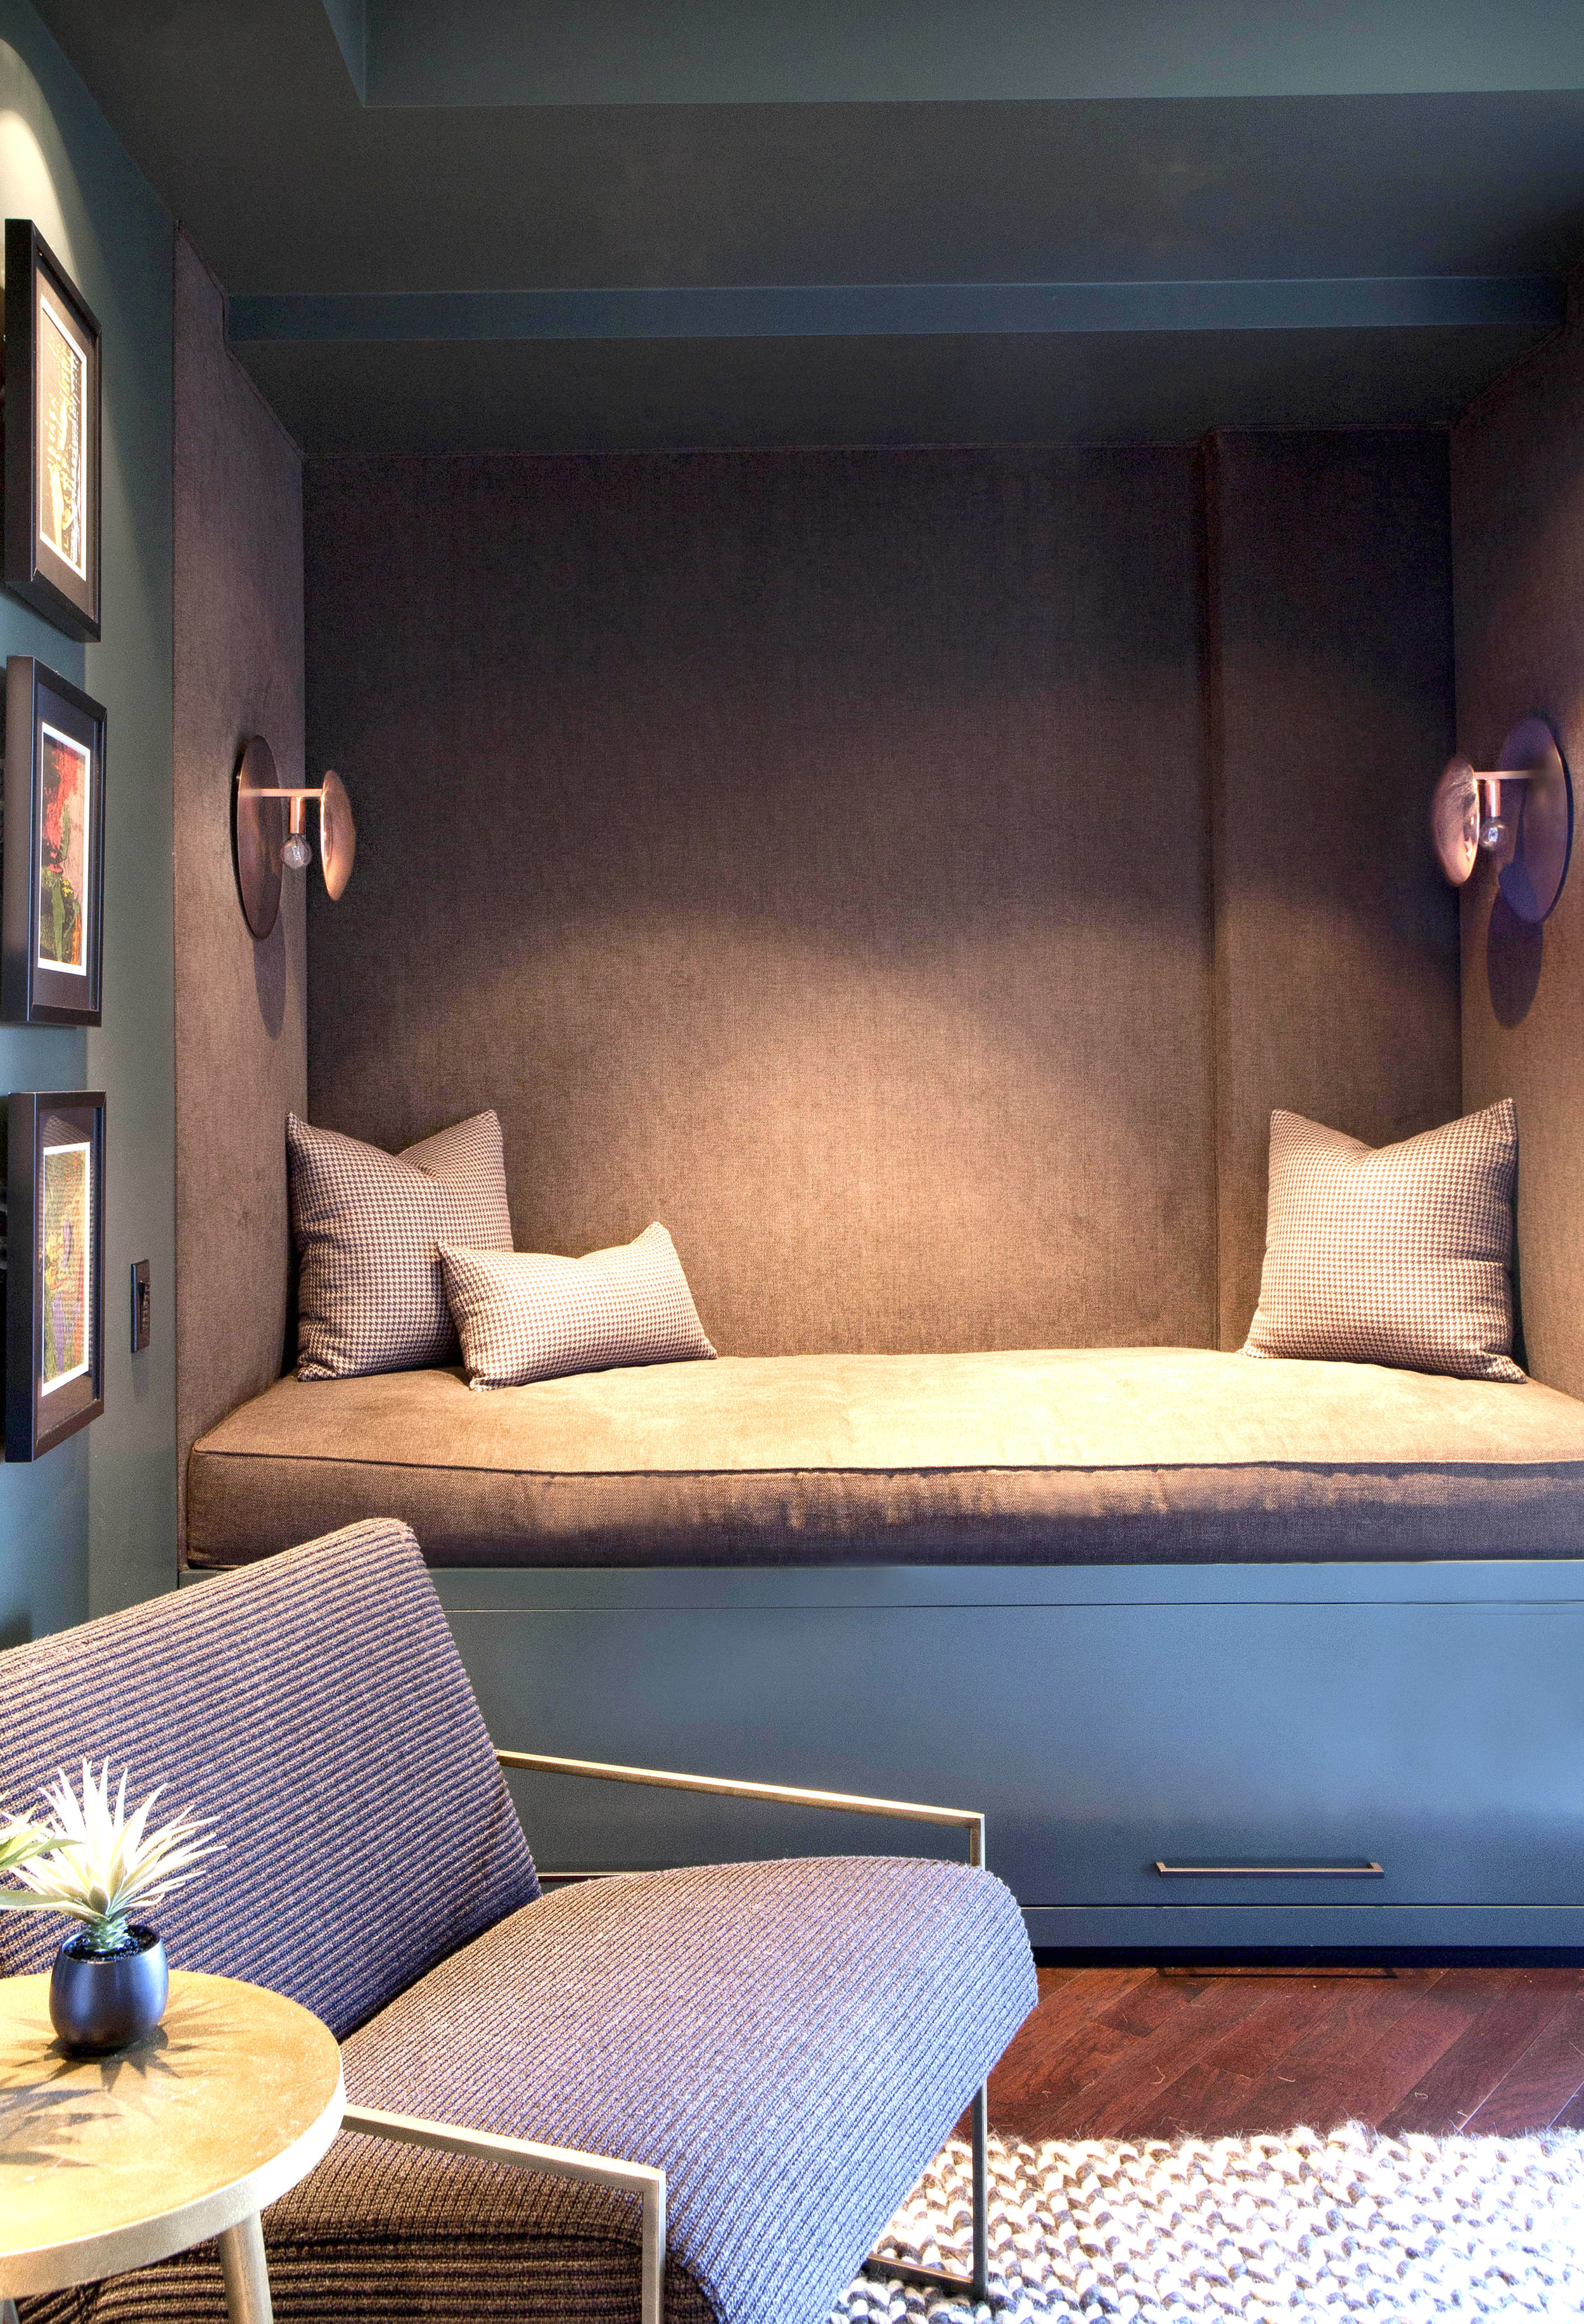 - In a true blend of form and function, we transformed the study into a self-contained guest room, replacing a closet with a cove-like daybed complete with suitcase storage.